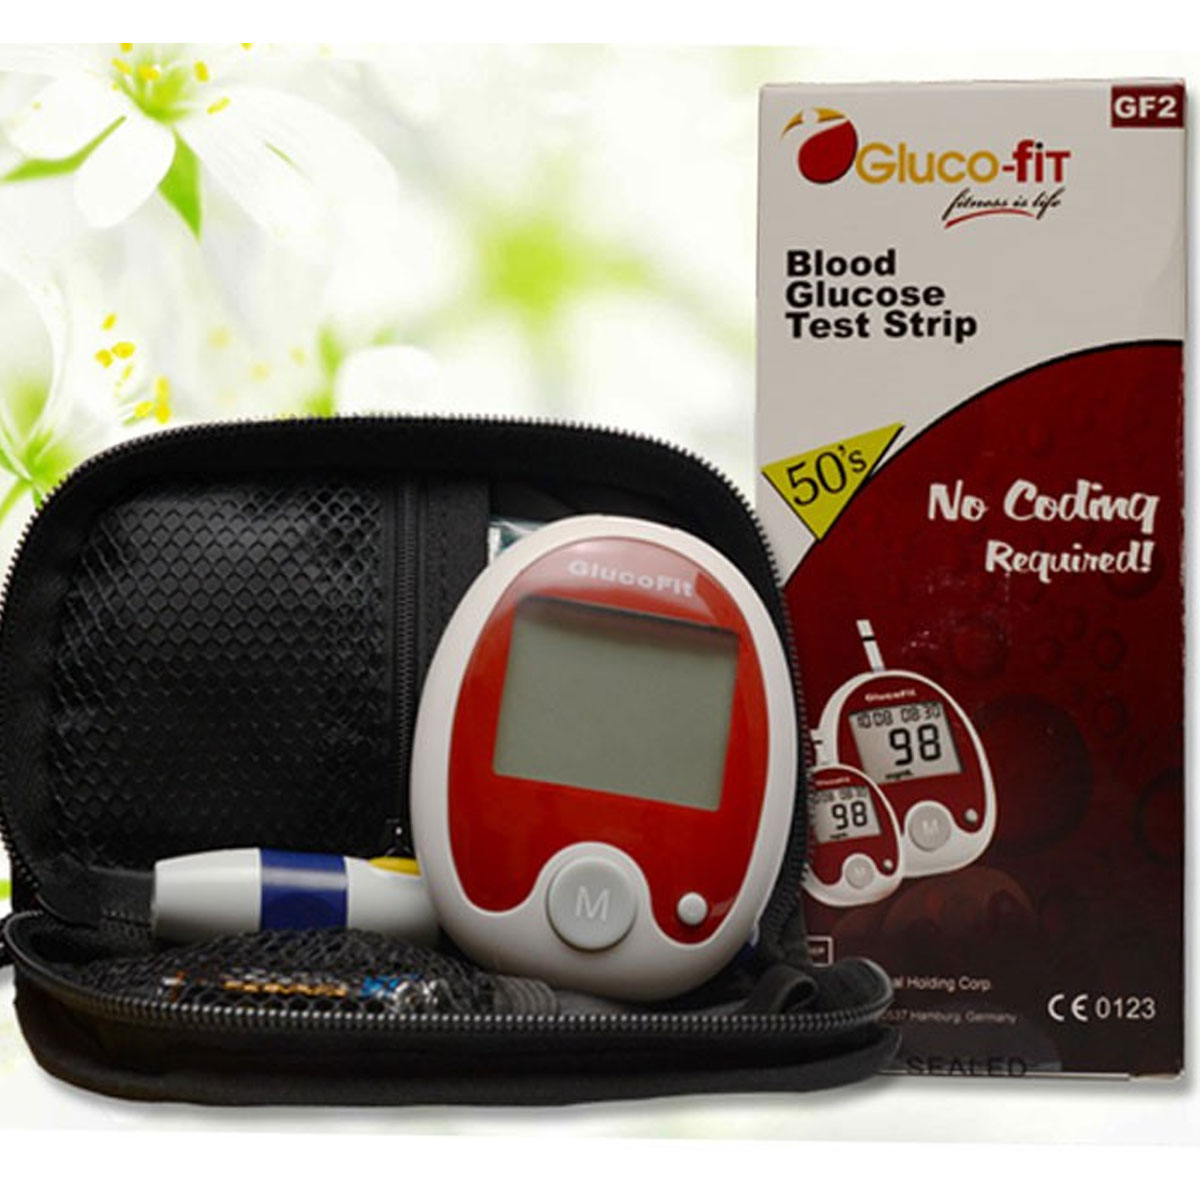 Gluco Fit Blood Glucose Monitor With 10 Test Strips Gallery Image 1